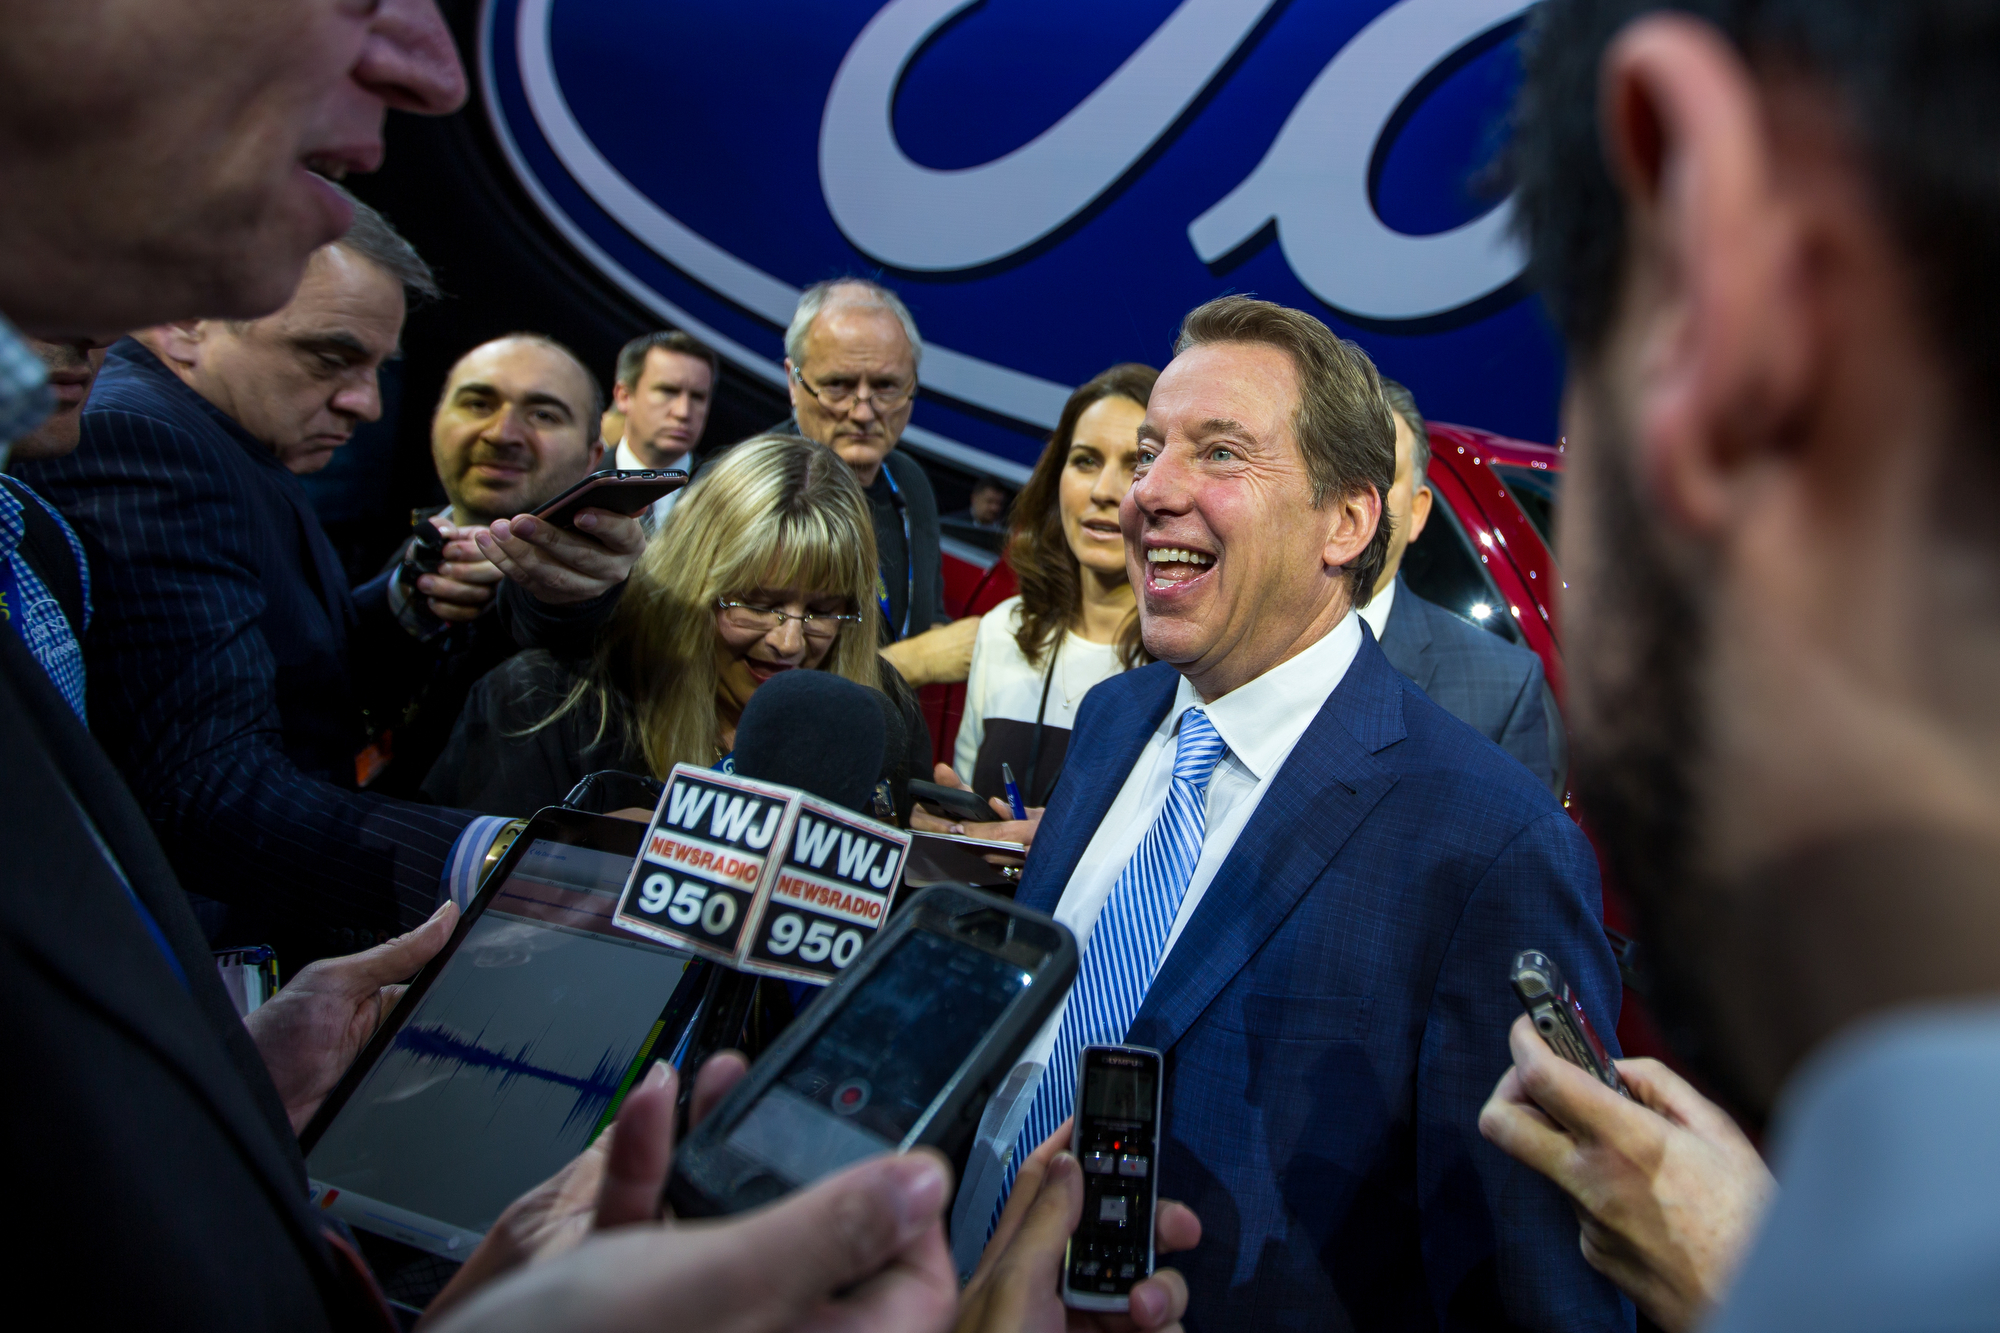 William Clay Ford Jr., Chairman of Ford, talks with reporters at the Joe Louis Arena during the North American International Auto Show on Monday, January 9, 2017. Additionally, Ford announced the return of the Bronco for 2020 and their partnerships with urban areas to improve traffic patterns and transportation. Matt Weigand | The Ann Arbor News